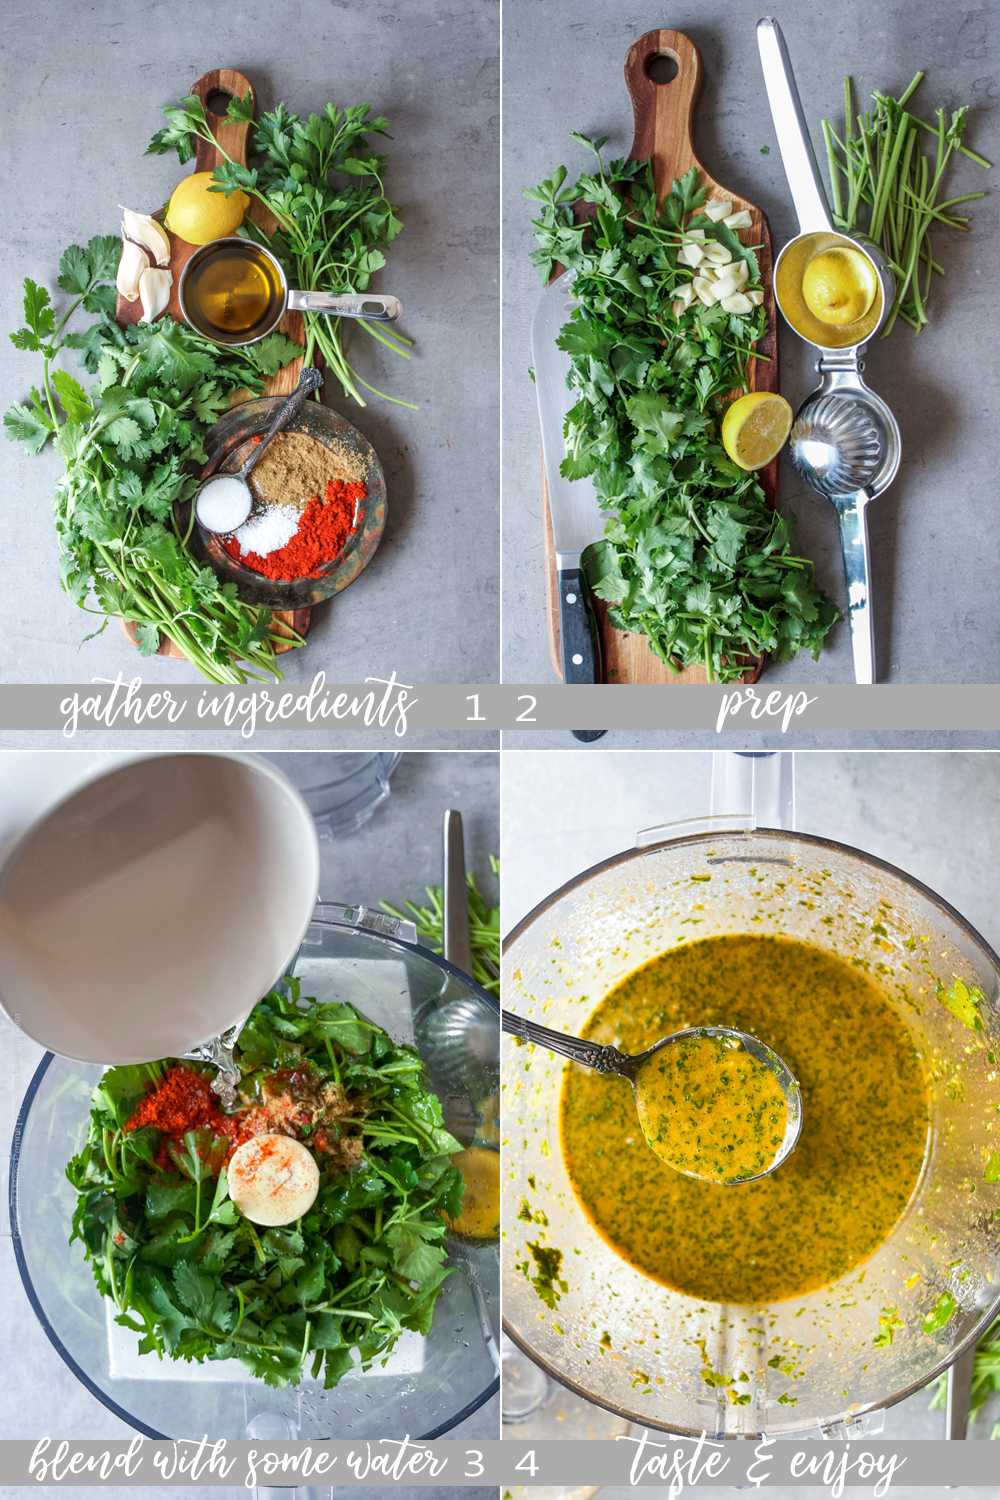 Raw ingredients for Moroccan chermoula and images showing how to make it step by step.